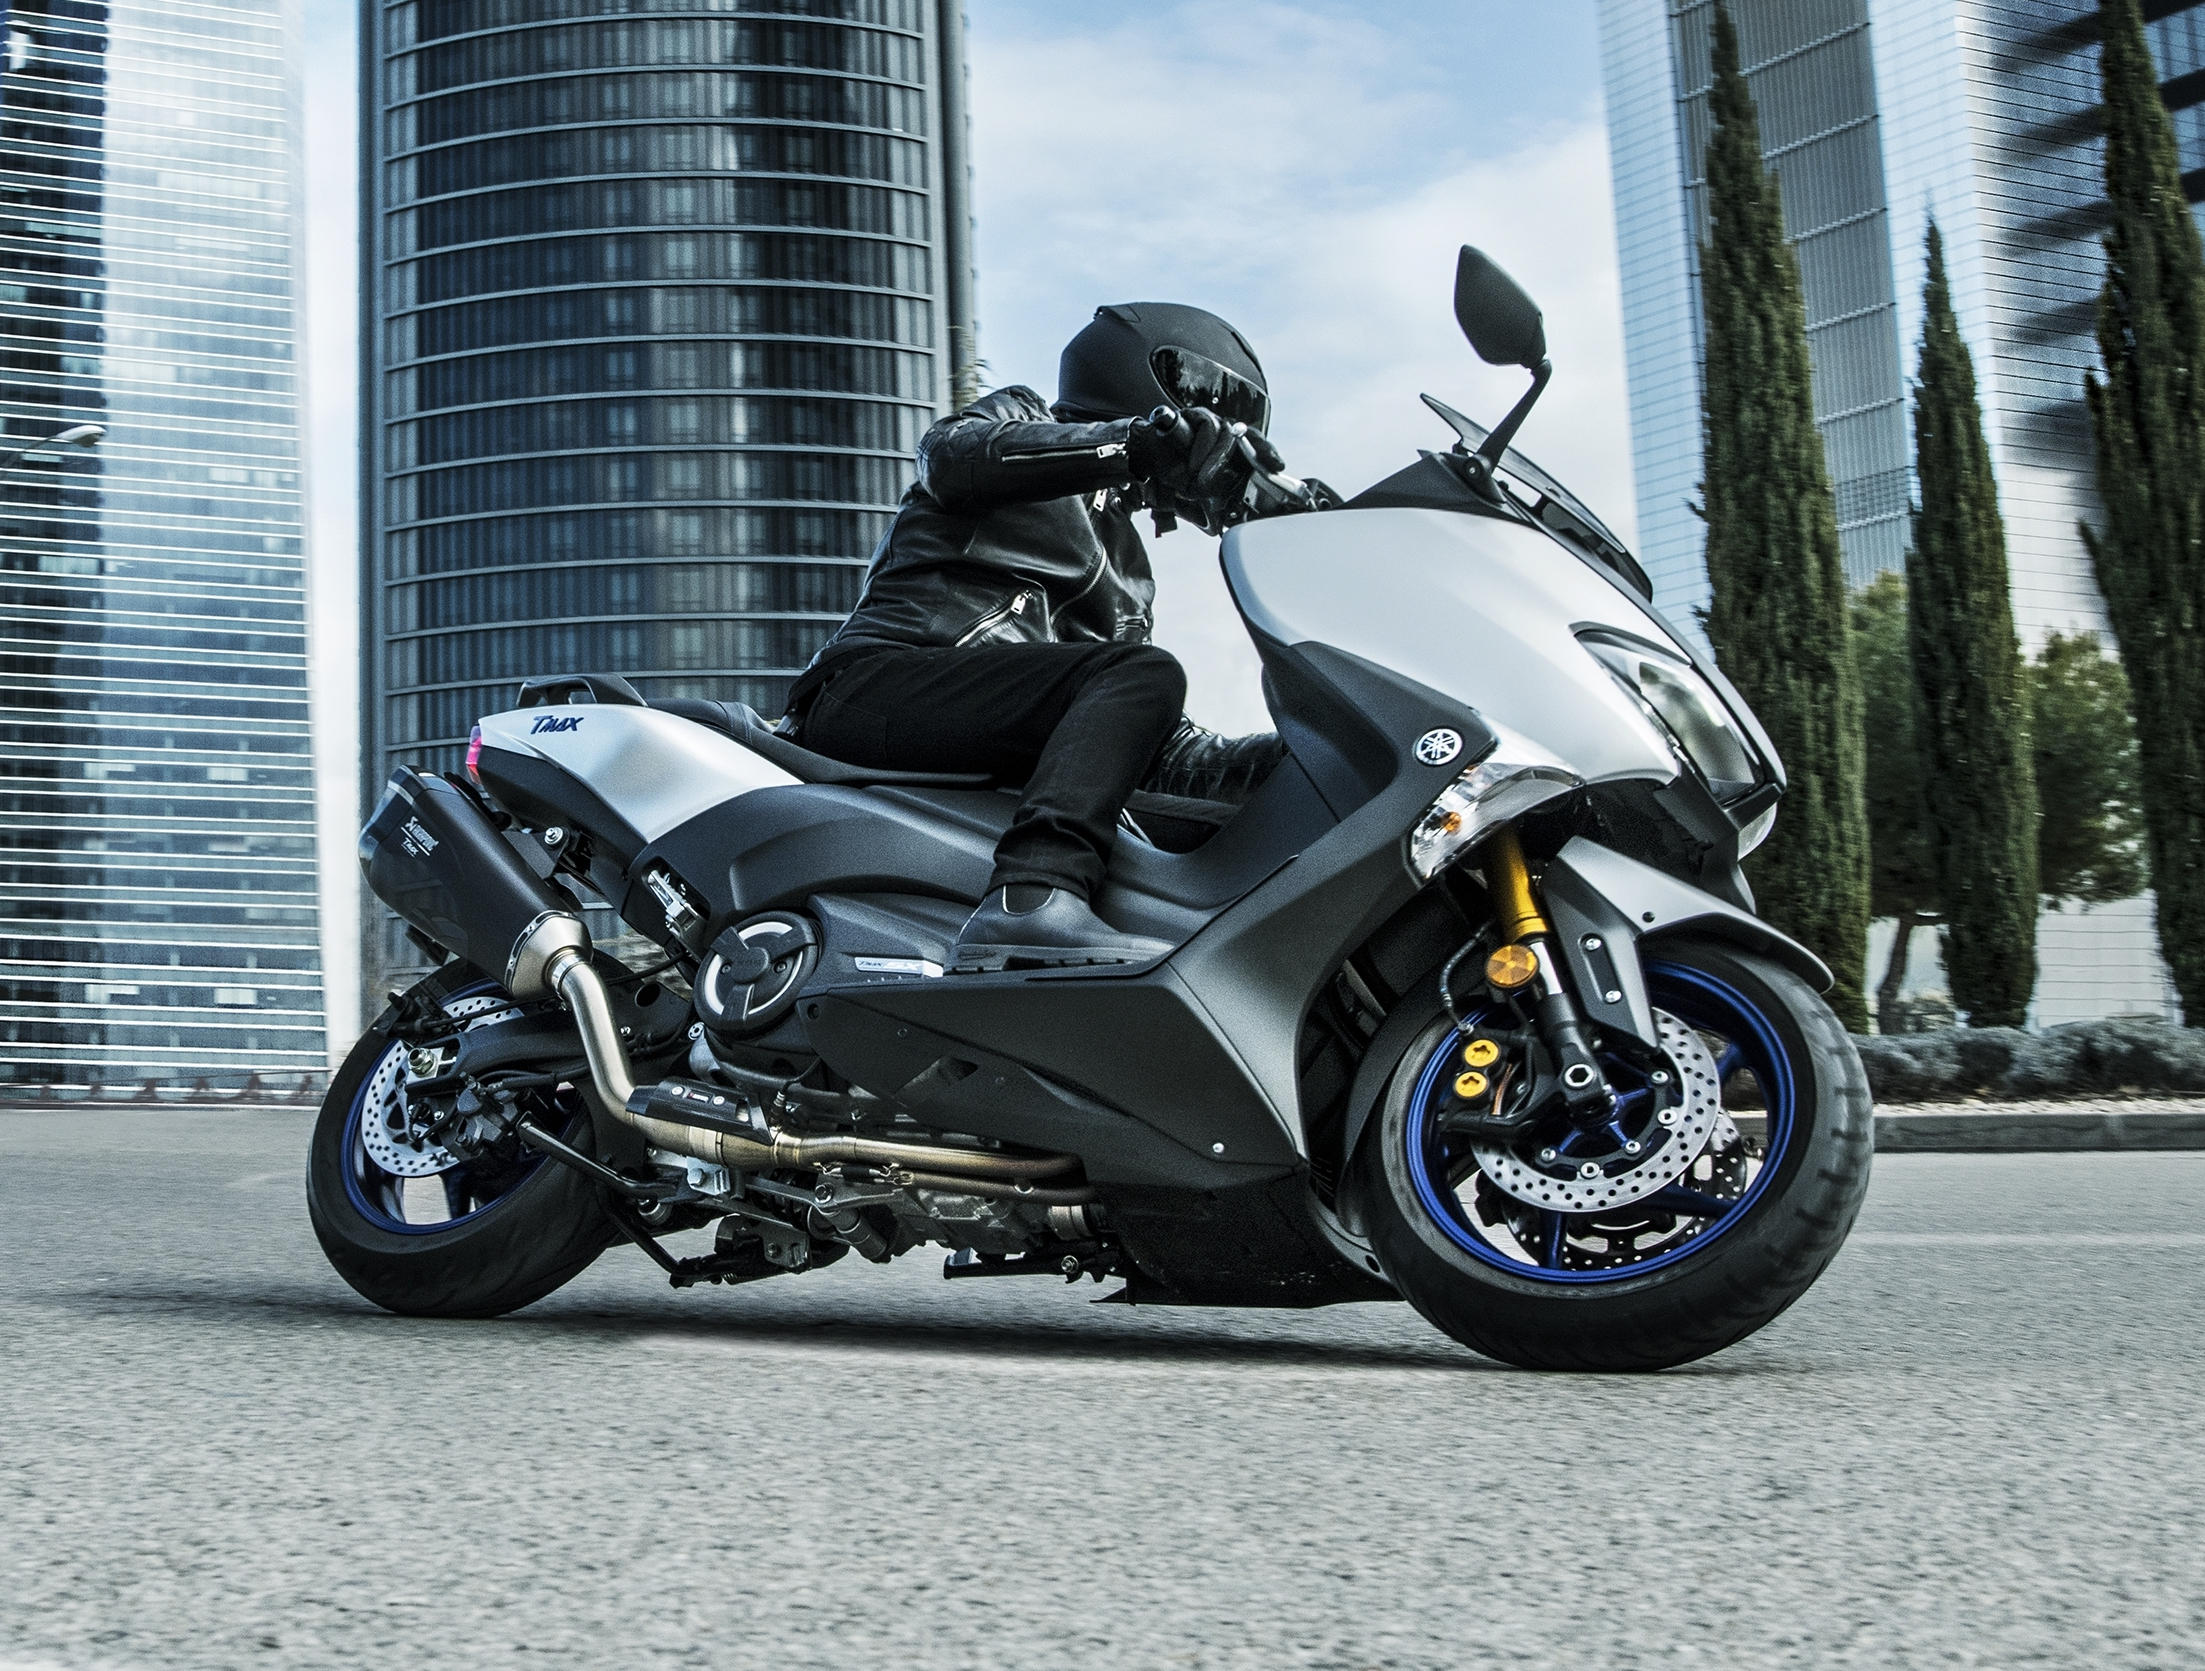 Yamaha Tmax Sx Sport Edition Price In India – Free Download Wallpaper